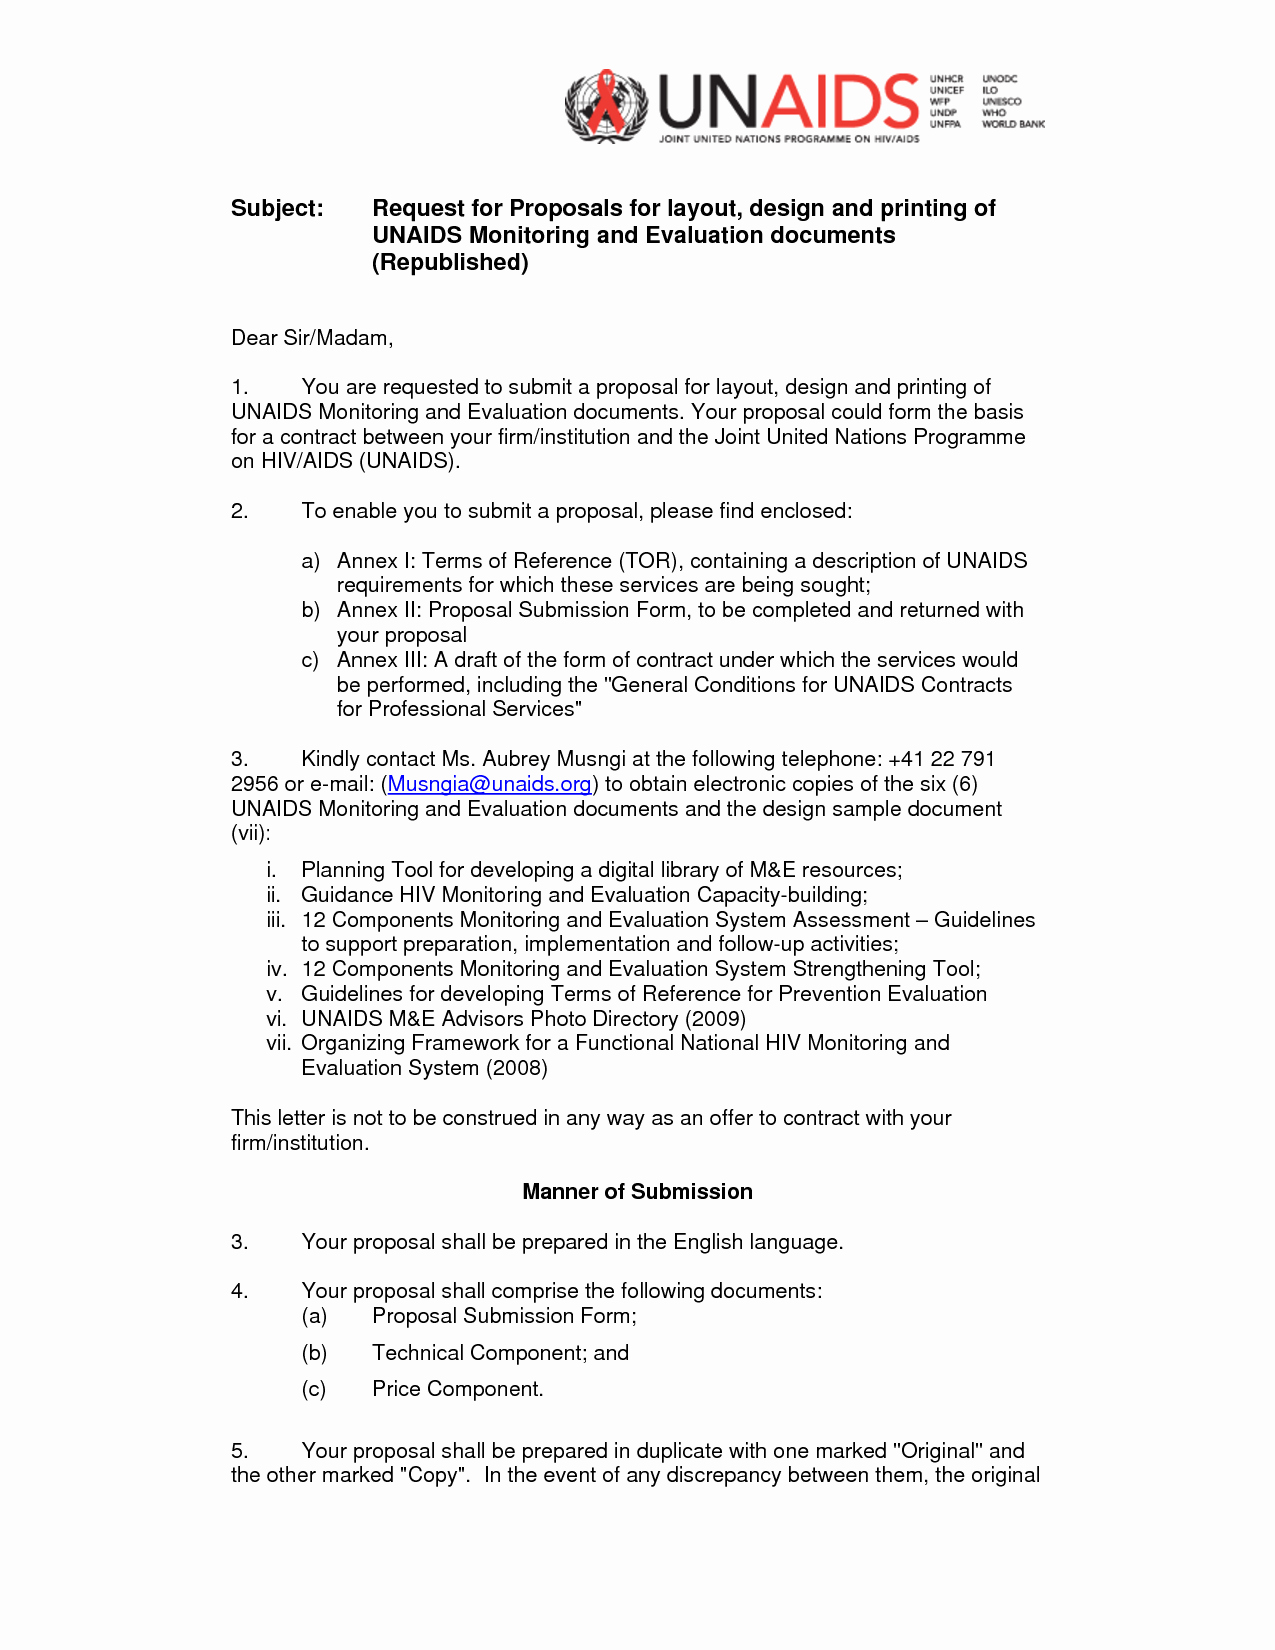 Sample Rfp Response Template Inspirational Rfp Cover Letter